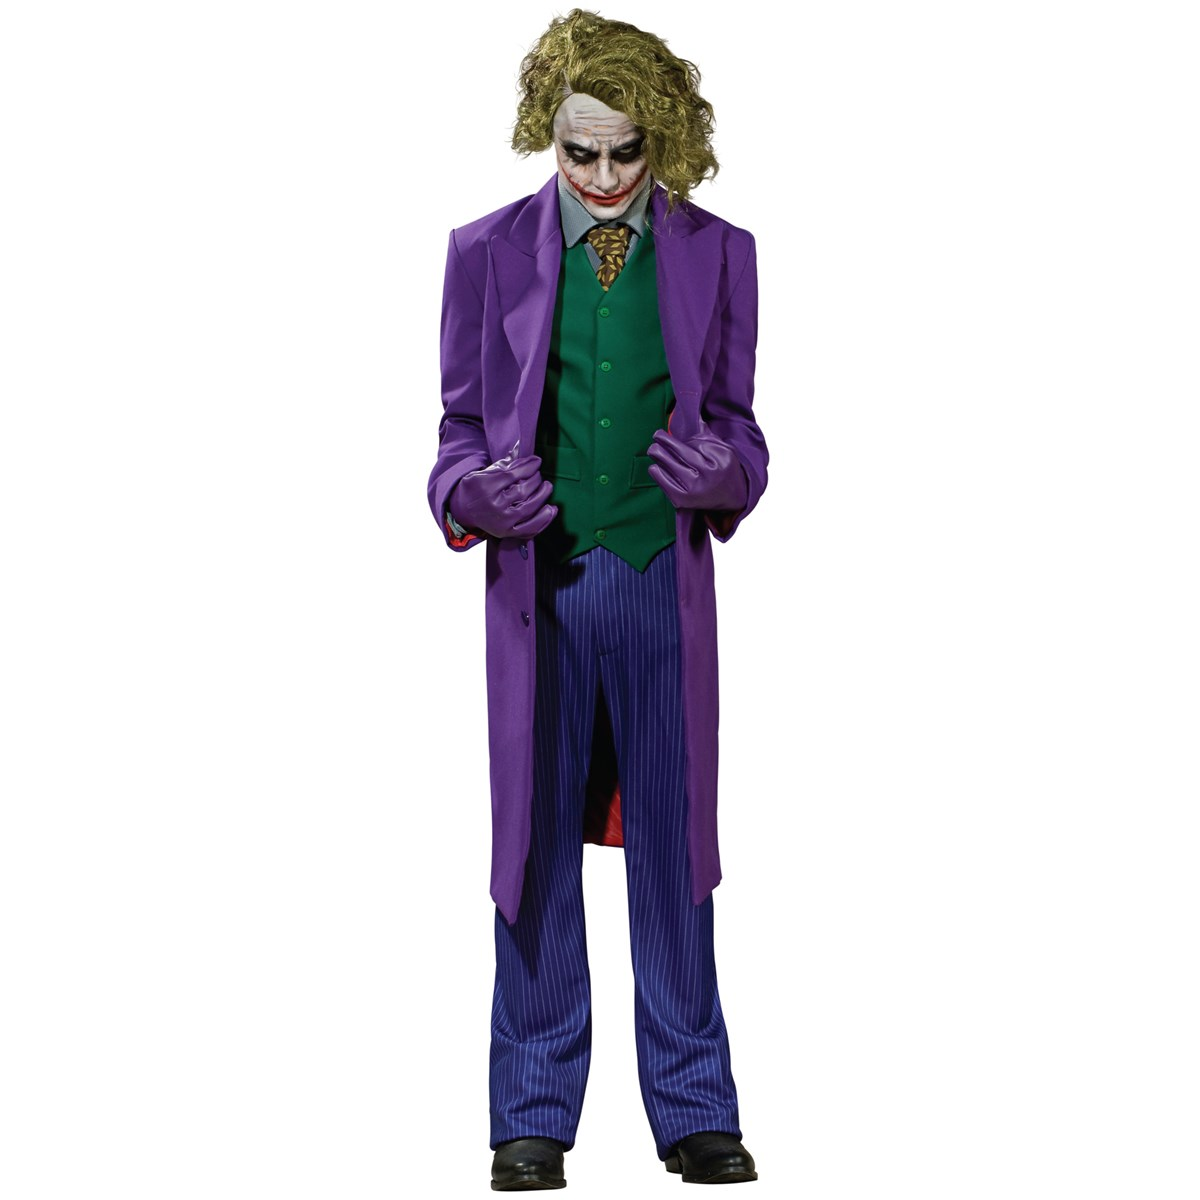 Joker images collection 46 - Batman Dark Knight The Joker Grand Heritage Collection Buycostumes Com